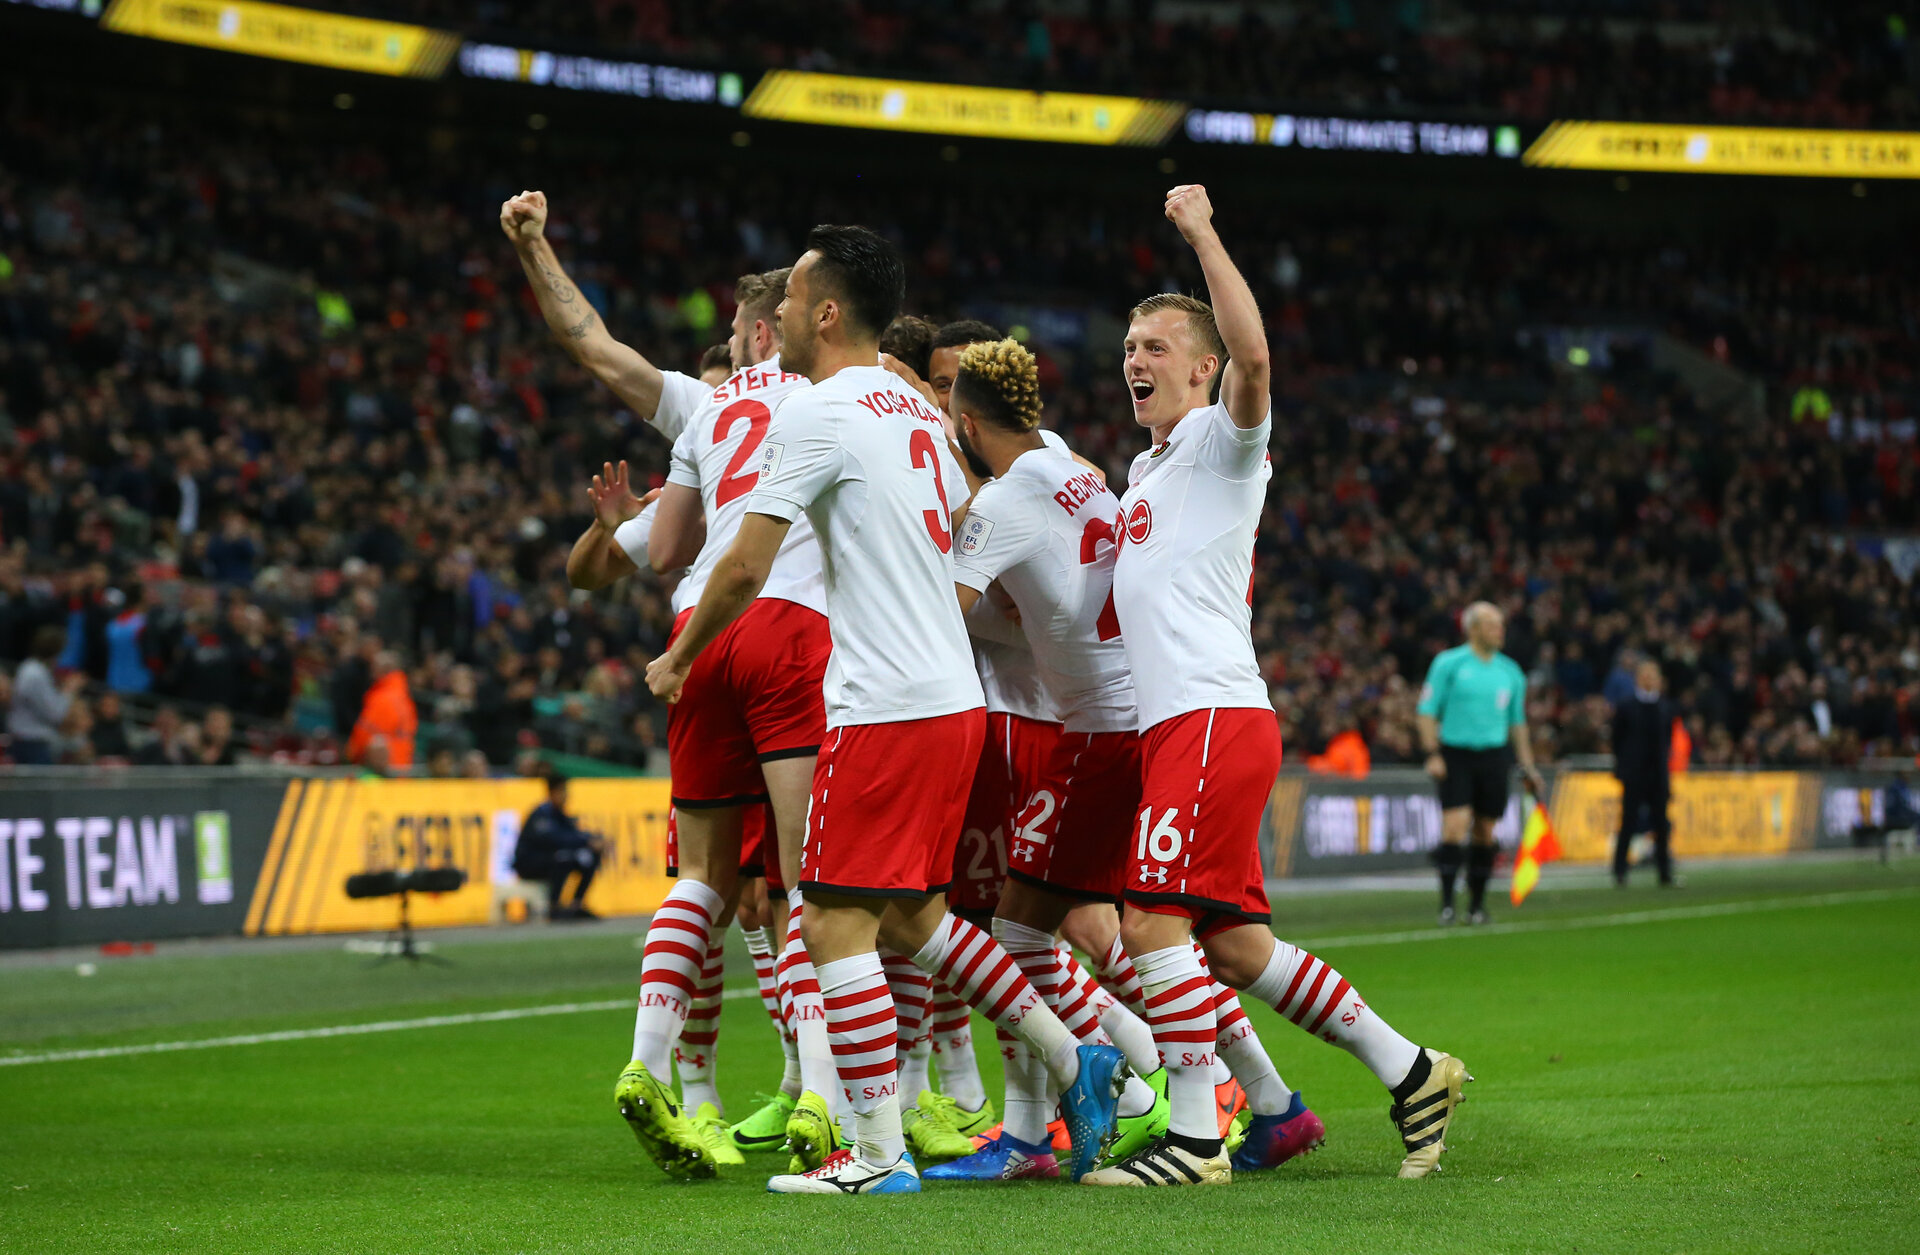 Saints players celebrate during the EFL Cup Final match between Manchester United and Southampton at Wembley Stadium, London, England on 26 February 2017. Photo by Matt Watson/SFC/Digital South.